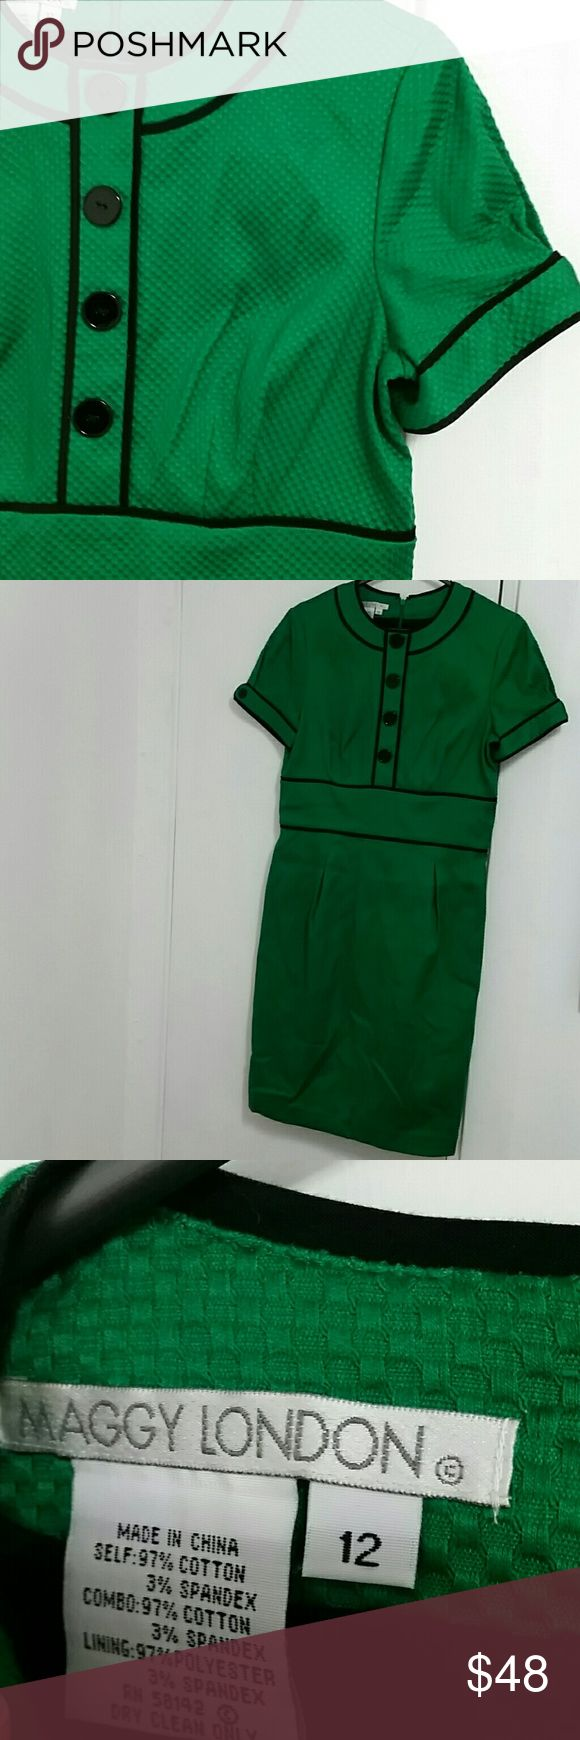 Maggy London vintage (looking?) Dress Kelly green and black Maggy London dress. Bought at a vintage store, but I'm not sure it is actually vintage.  Def has a retro style though. Said it was NWOT and I didn't try it on there...oops. Size 12. Excellent condition. Adorable buttons and trim. Maggy London Dresses